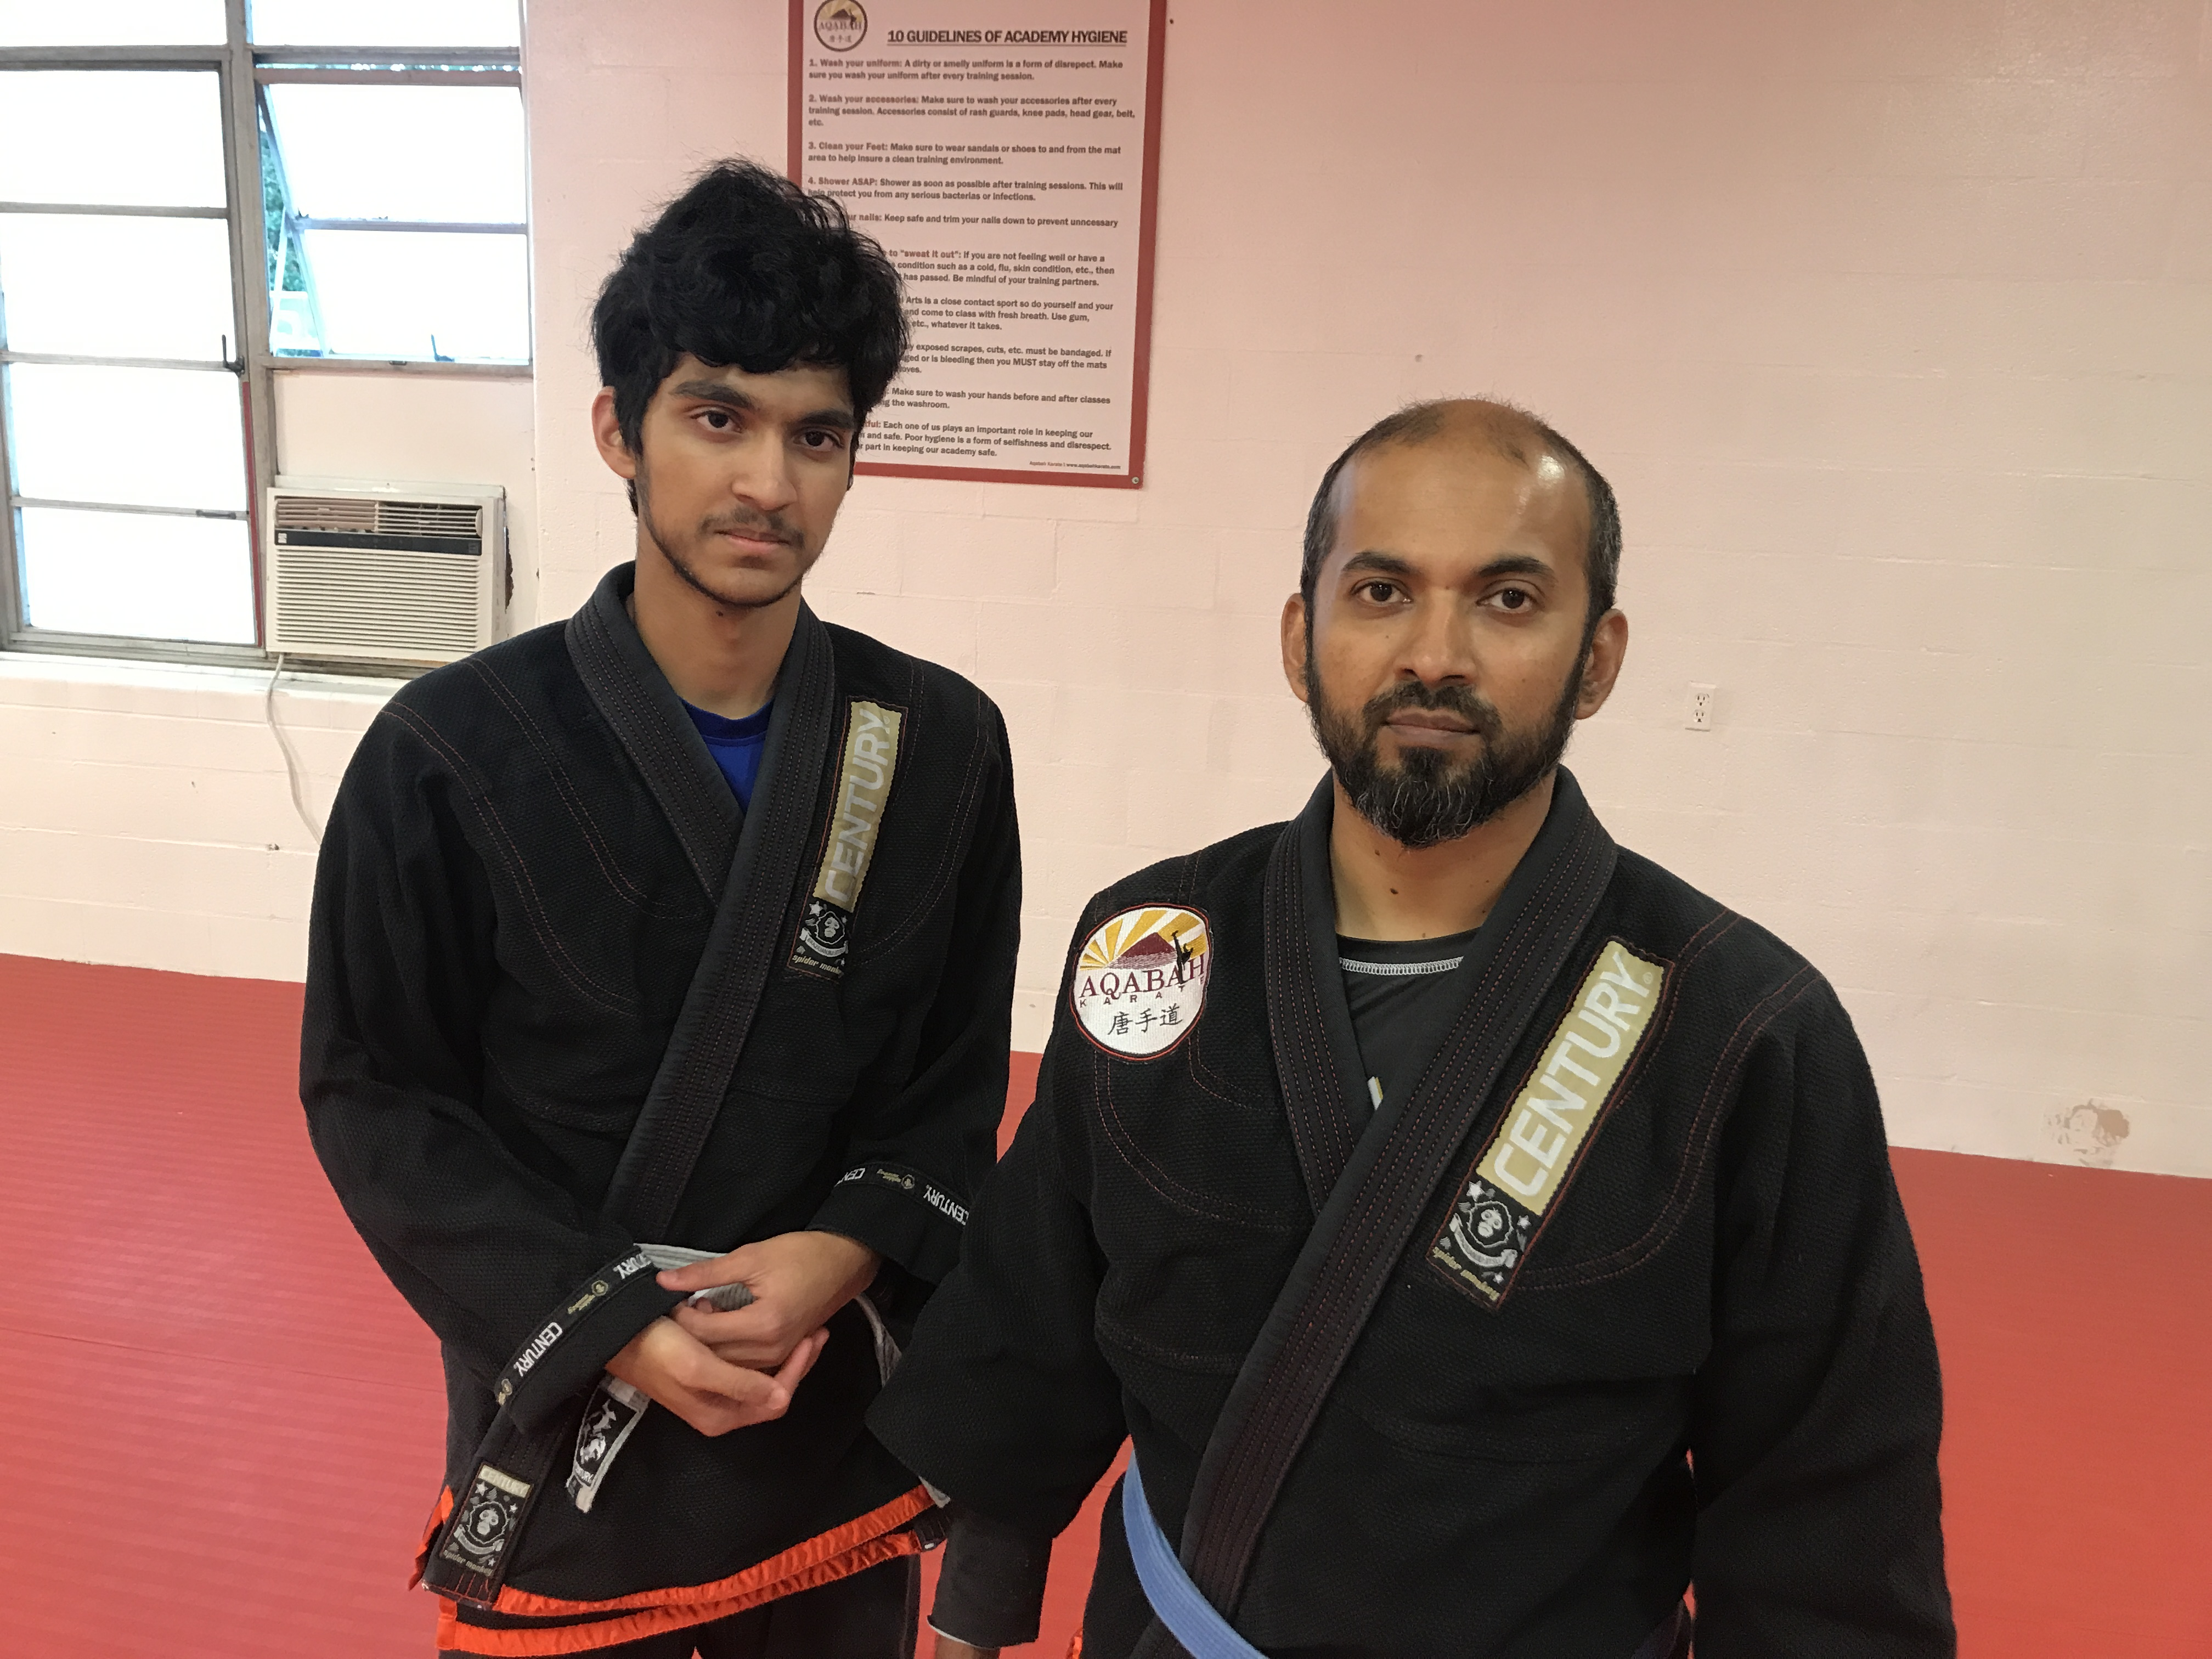 Muhib Rahman and his son Talha Muhib at Aqabah Karate on Thursday, October 26, 2017. Rahman is an instructor at Aqabah Karate in College Park and Talha is one of his students. (Chris Miller/Capital News Service)